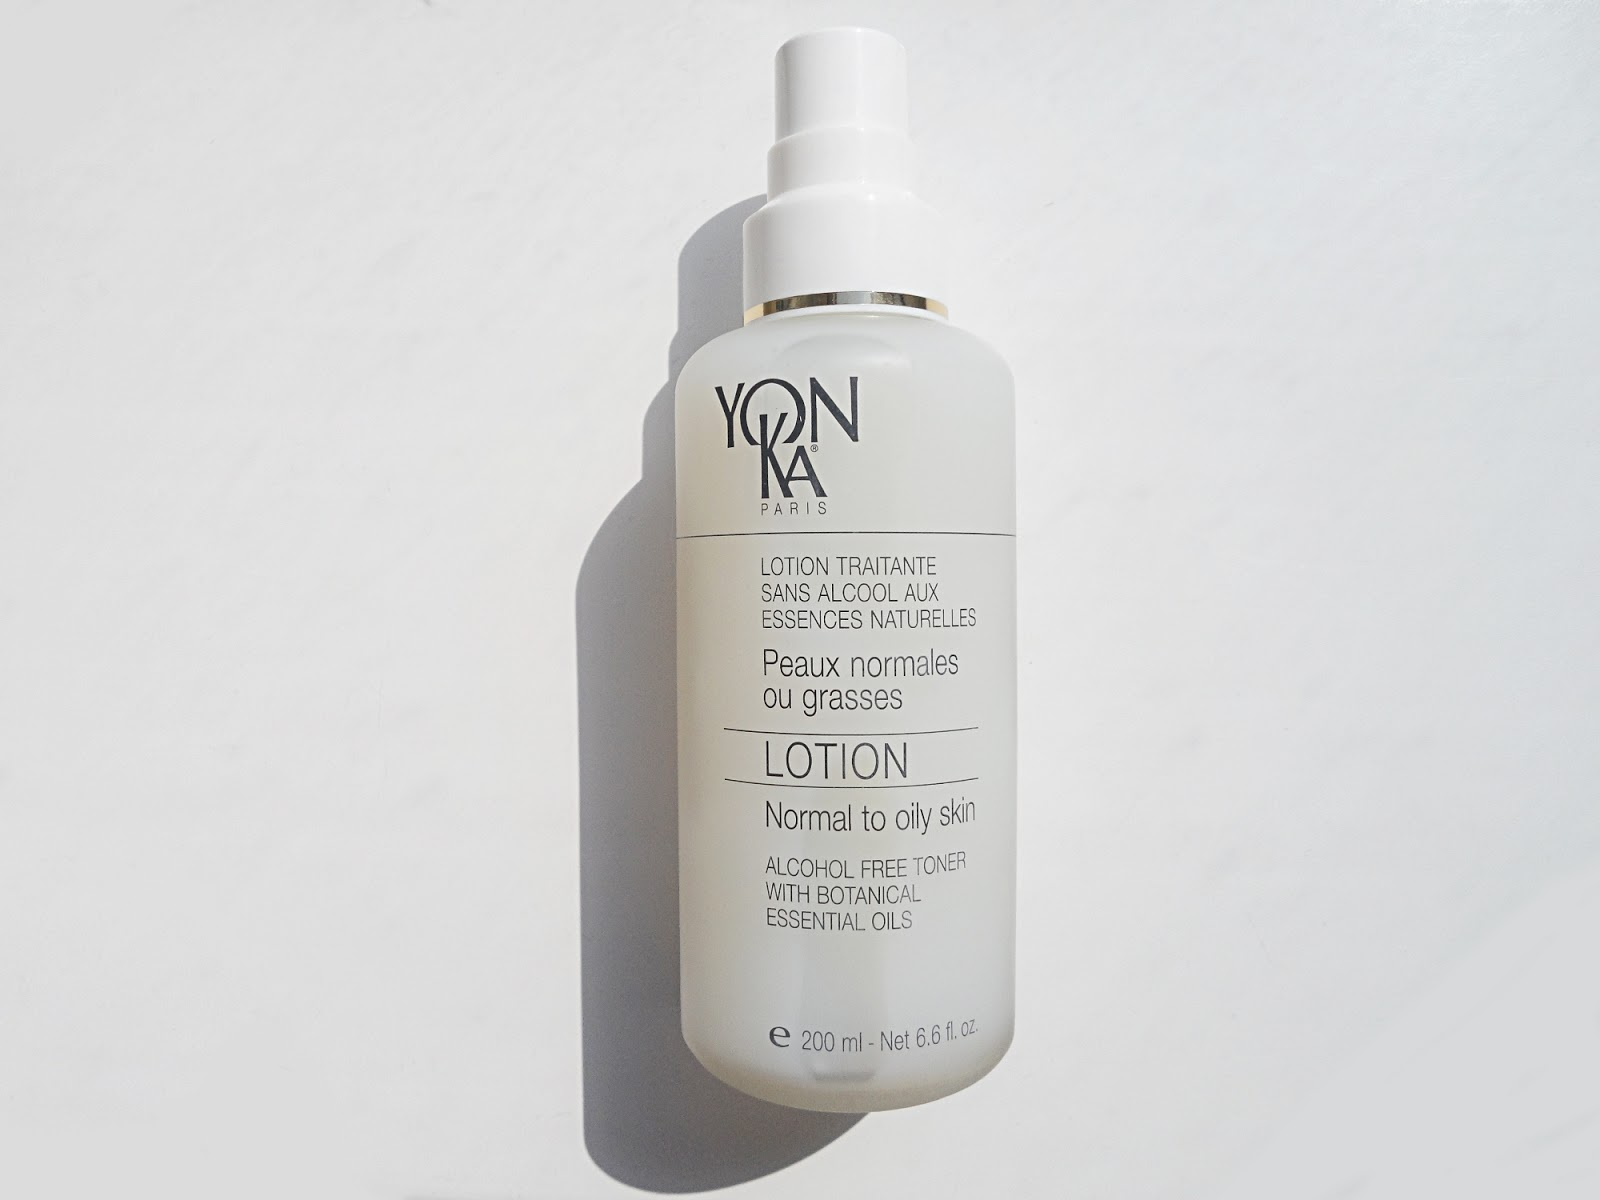 yonka yon ka aromatic phyto facial spray mist spa therapy buy online review liz breygel blogger